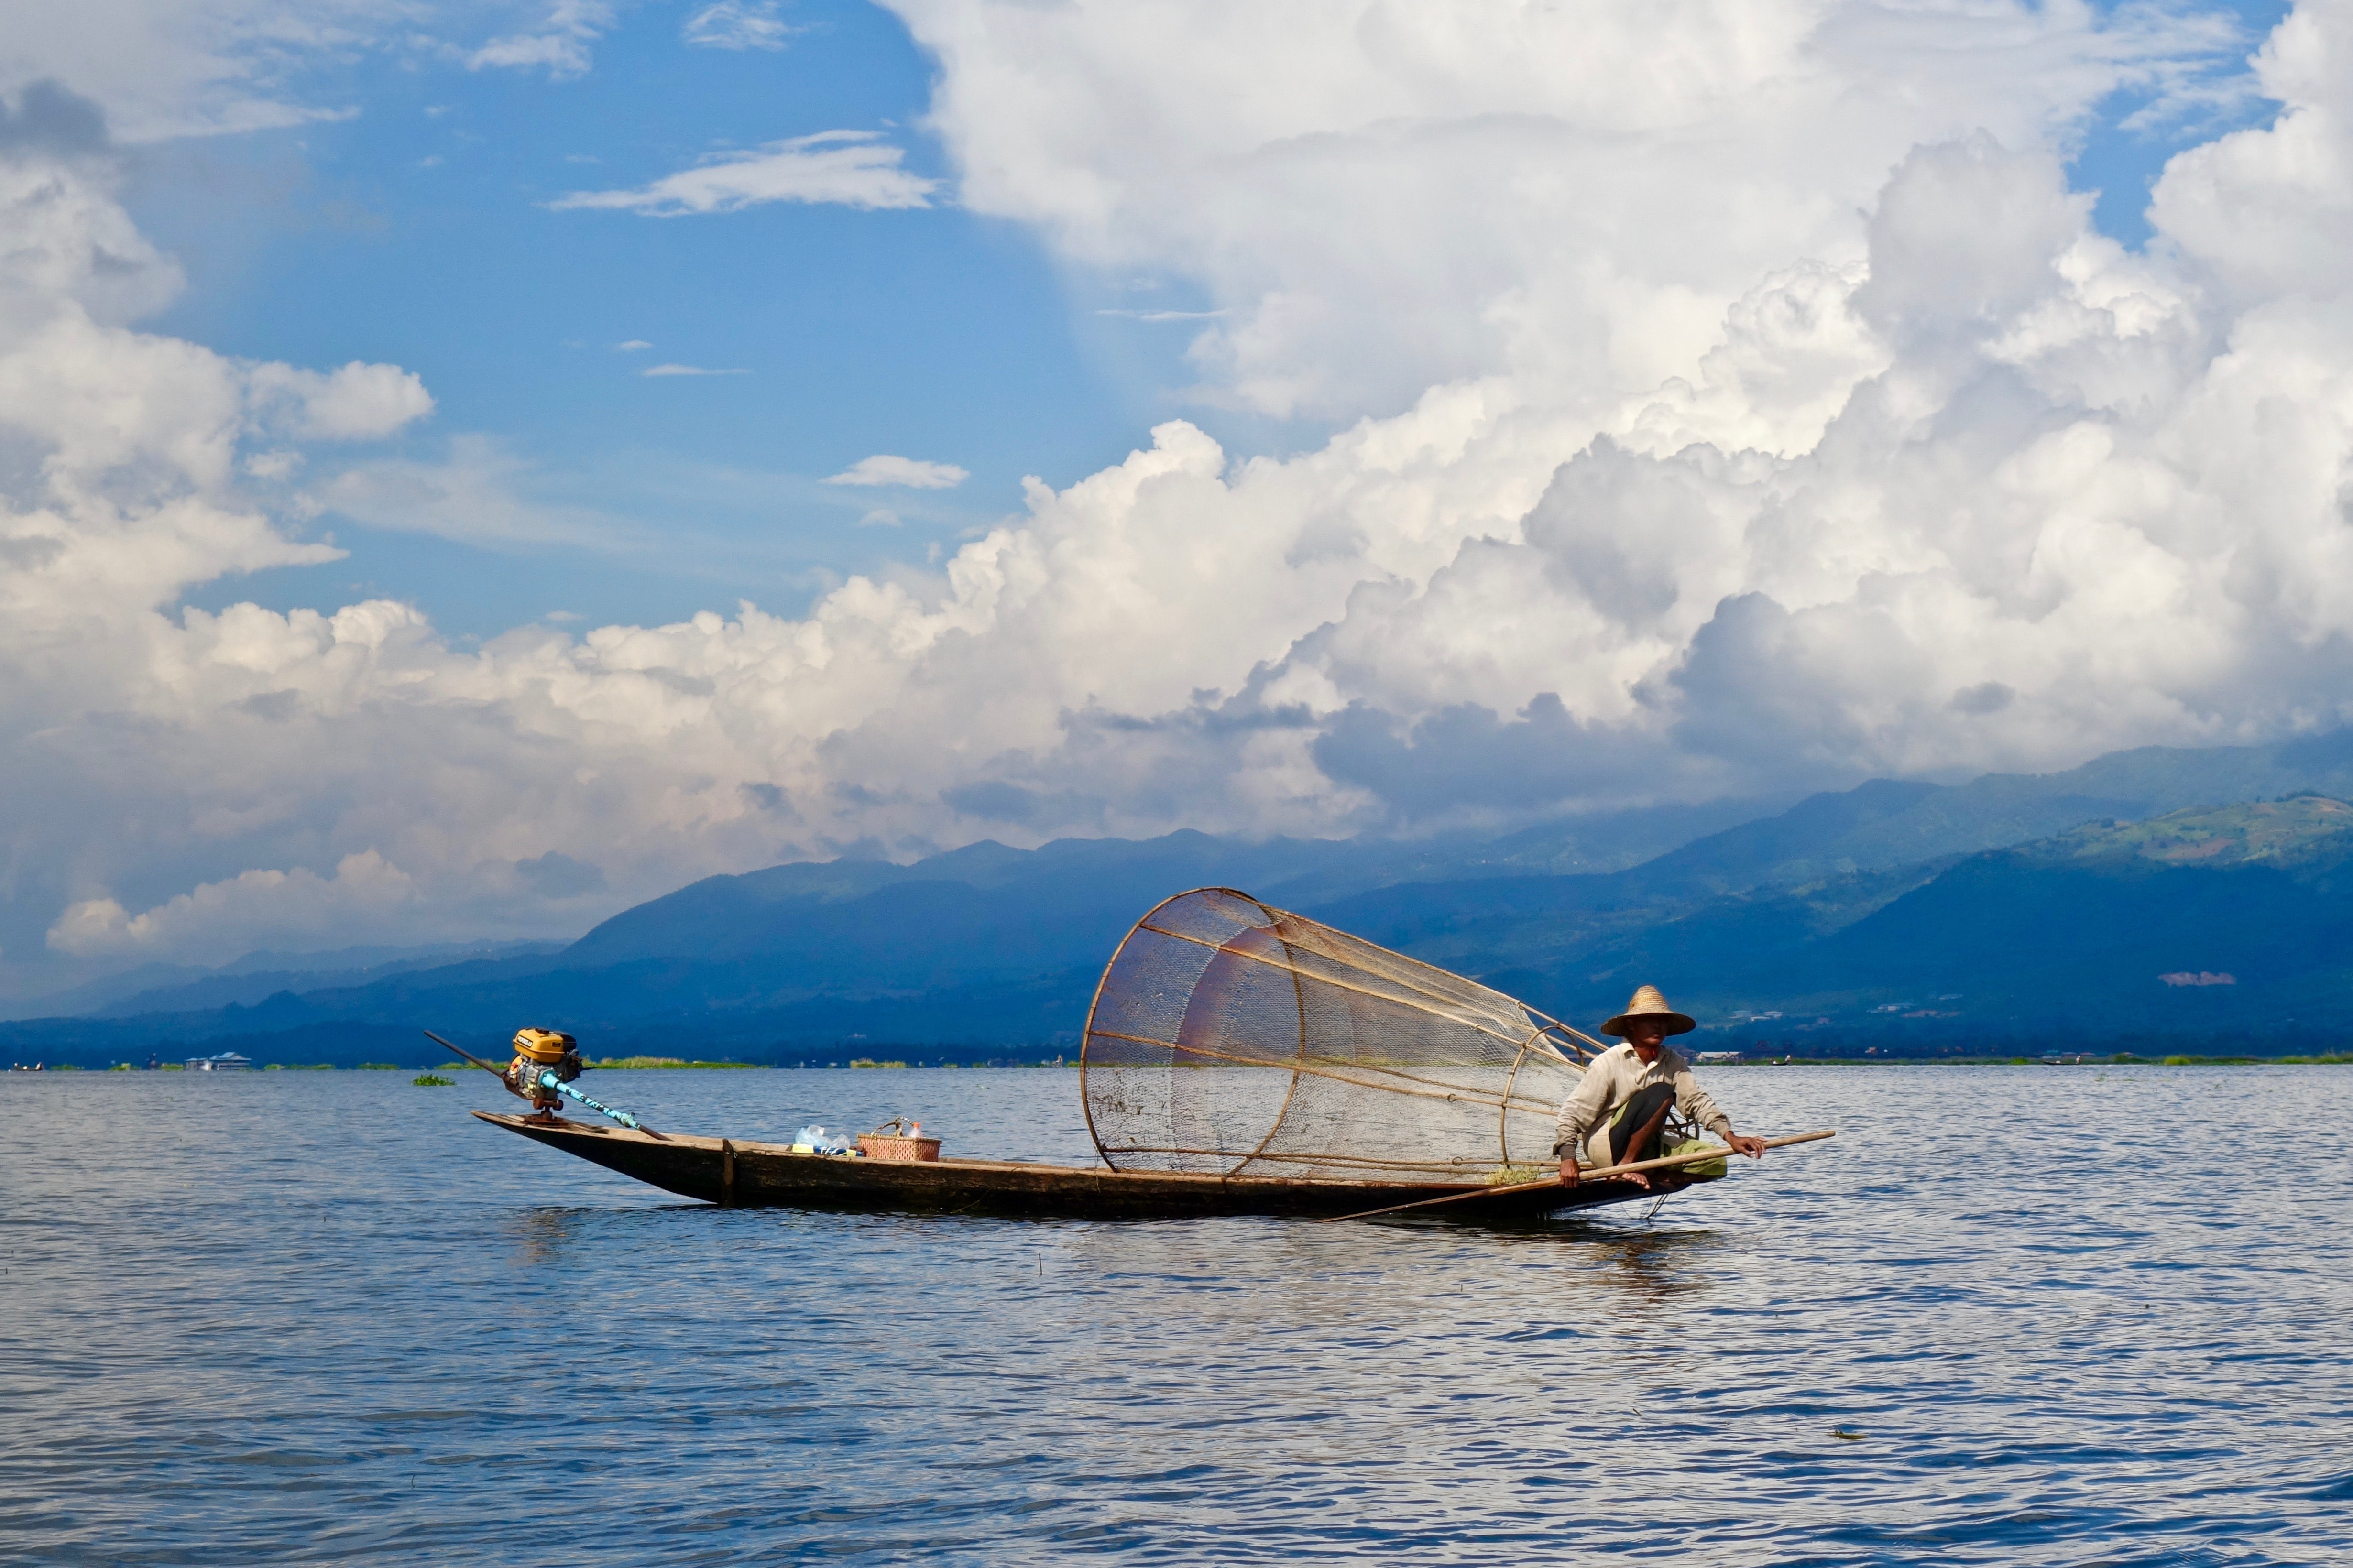 Visit the Exquisite Inle Lake